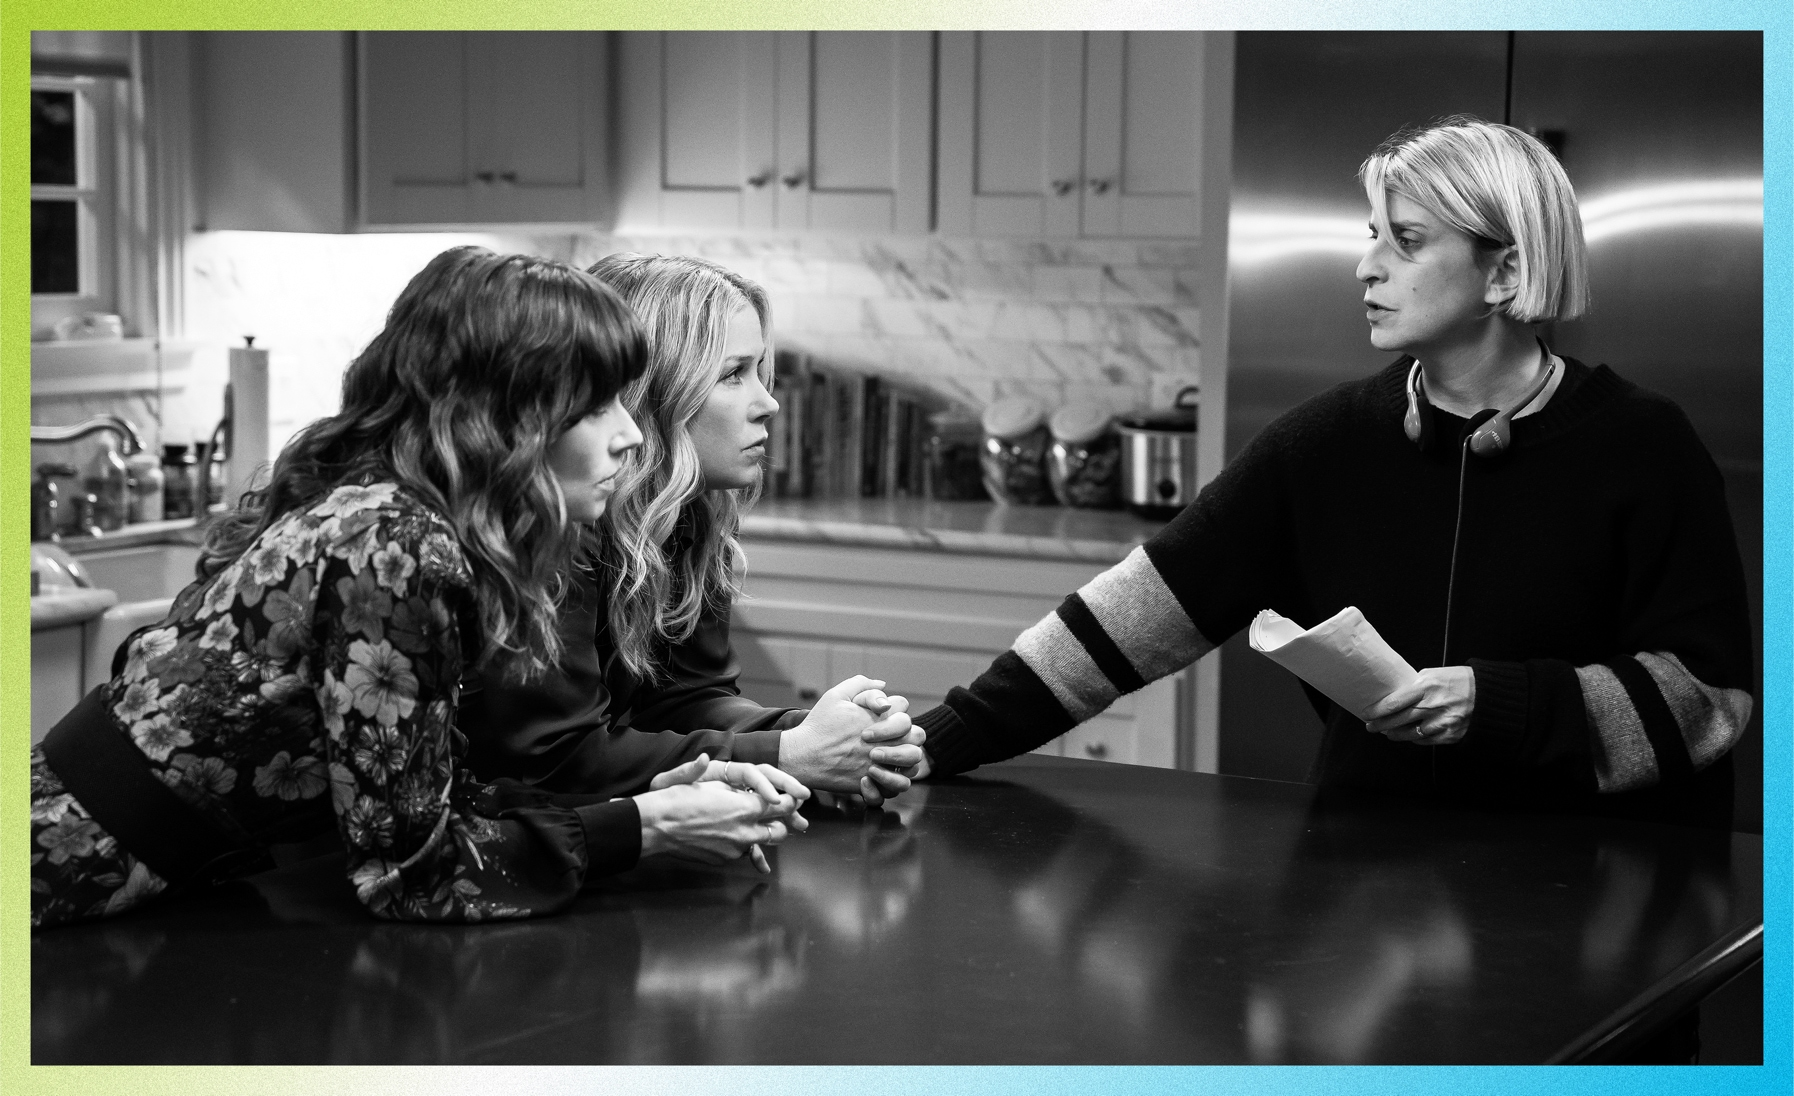 Behind the scenes of Dead to Me with Linda Cardellini, Christina Applegate, and Liz Feldman